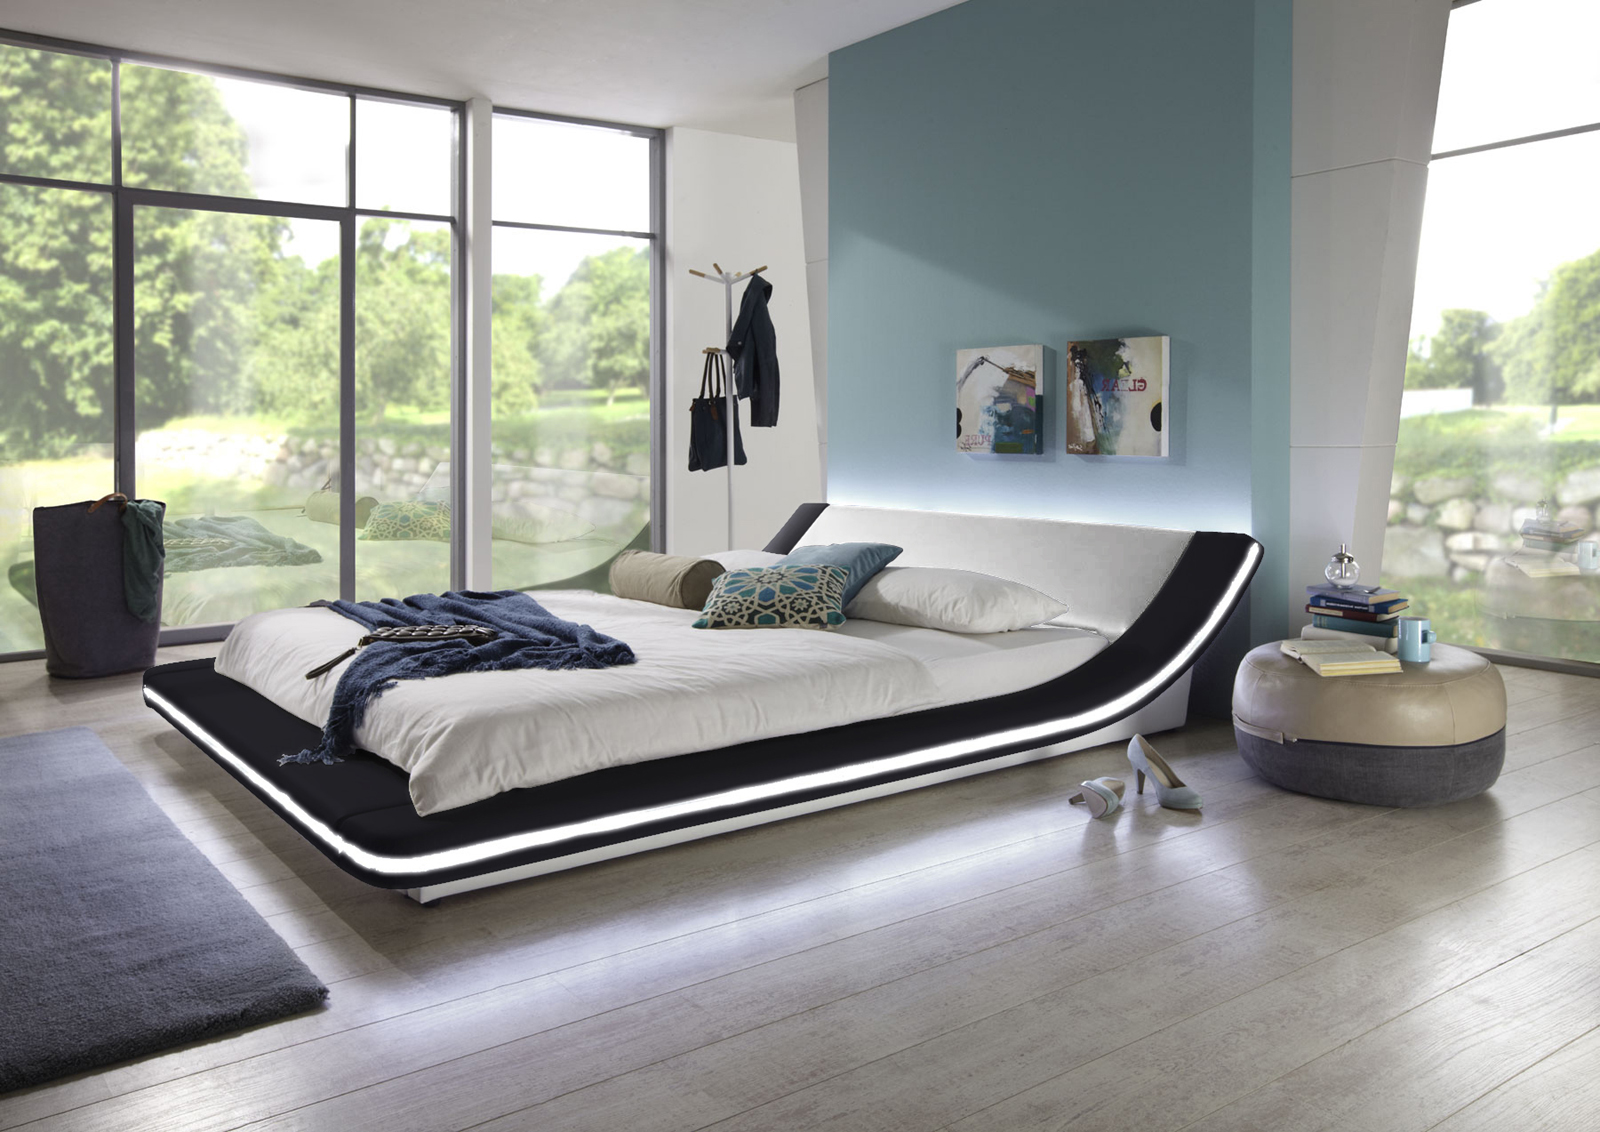 sam polsterbett 140 x 200 cm schwarz wei custavo led auf lager. Black Bedroom Furniture Sets. Home Design Ideas